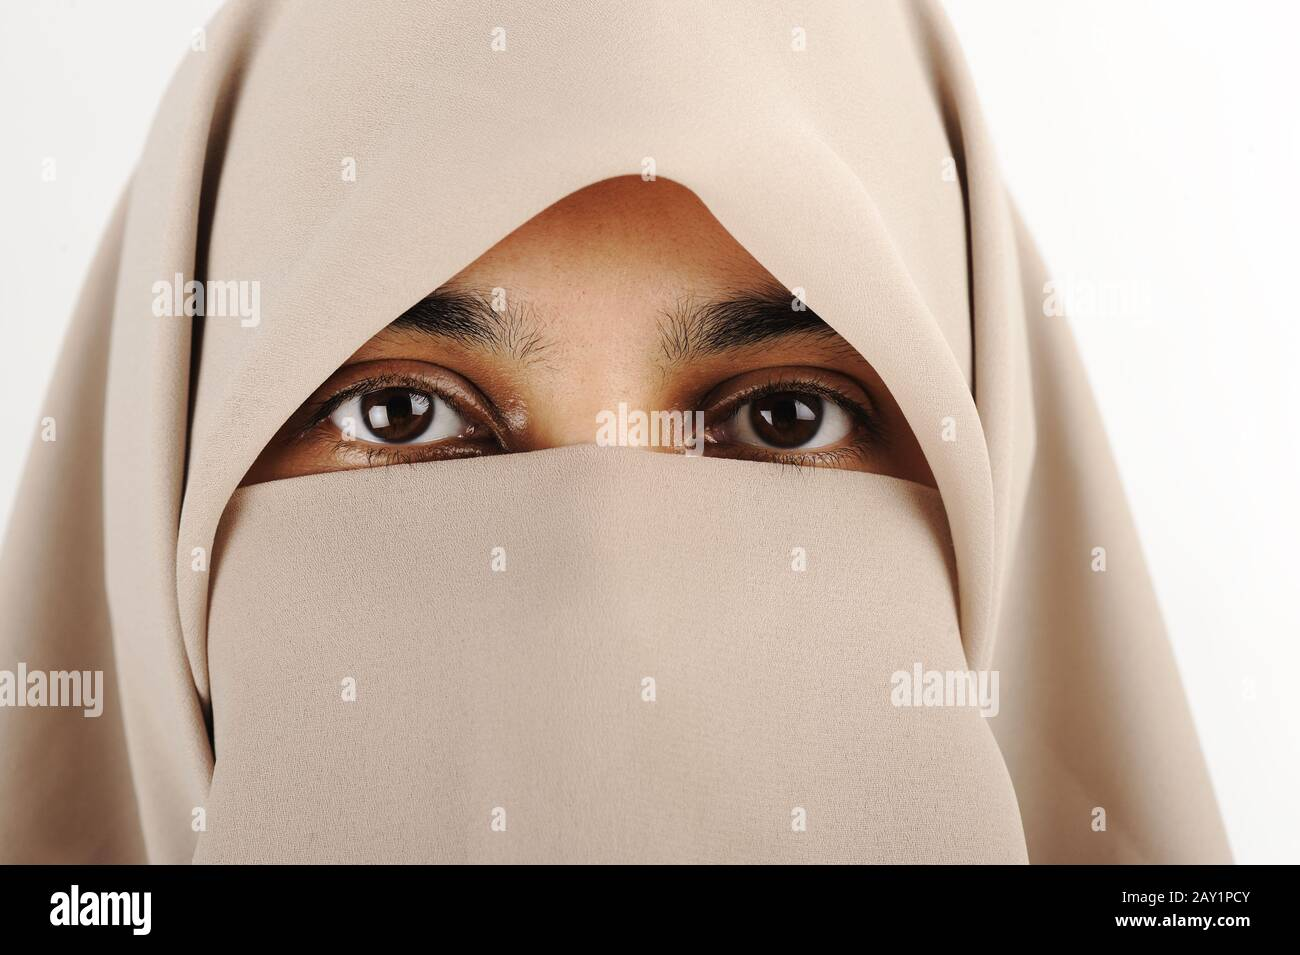 When women began to wear hijab in increasing numbers, demonstrating a common reaction to hold onto religious and cultural identifiers in response to persecution, hijab was thrown into new focus as. Niqab Muslim Woman Veil Scarf Stock Photo Alamy